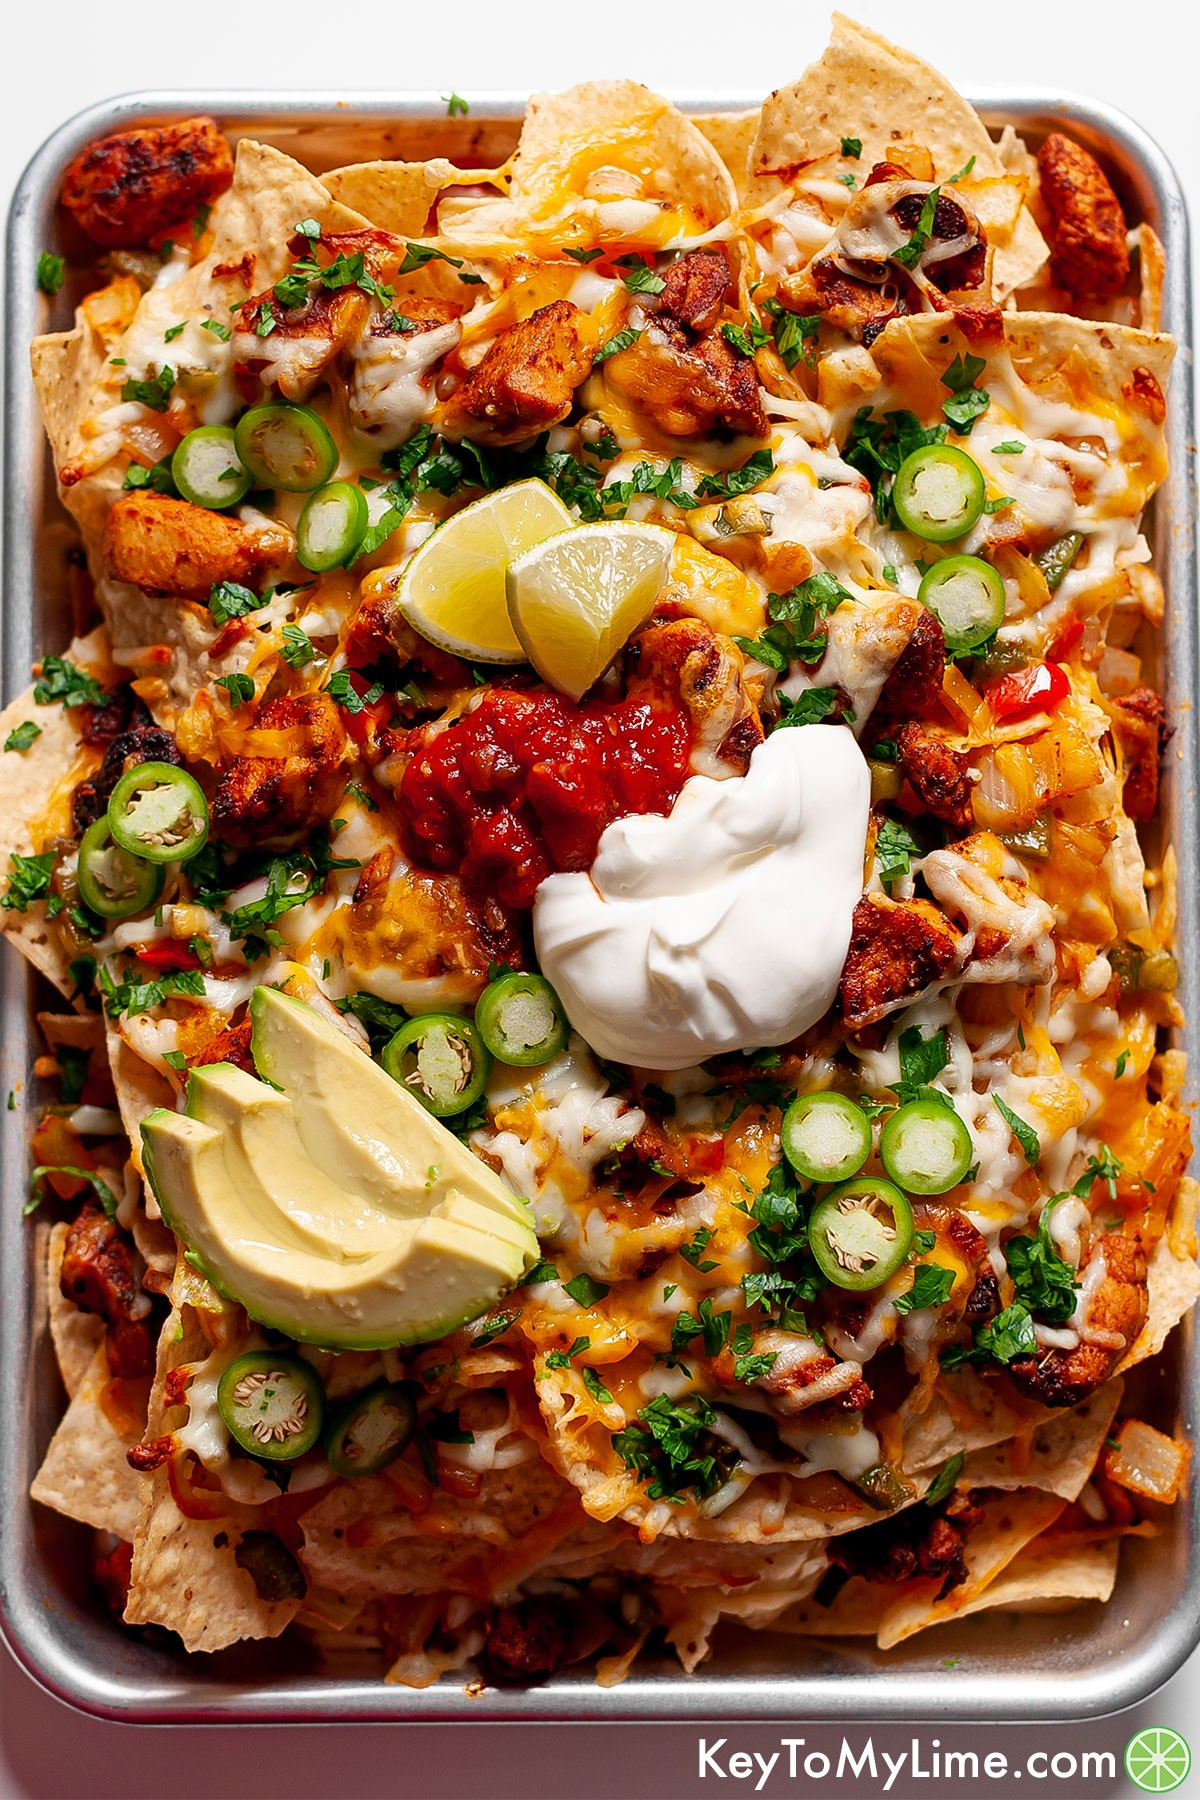 A tray of fajita nachos topped with lime wedges, salsa, and sour cream.